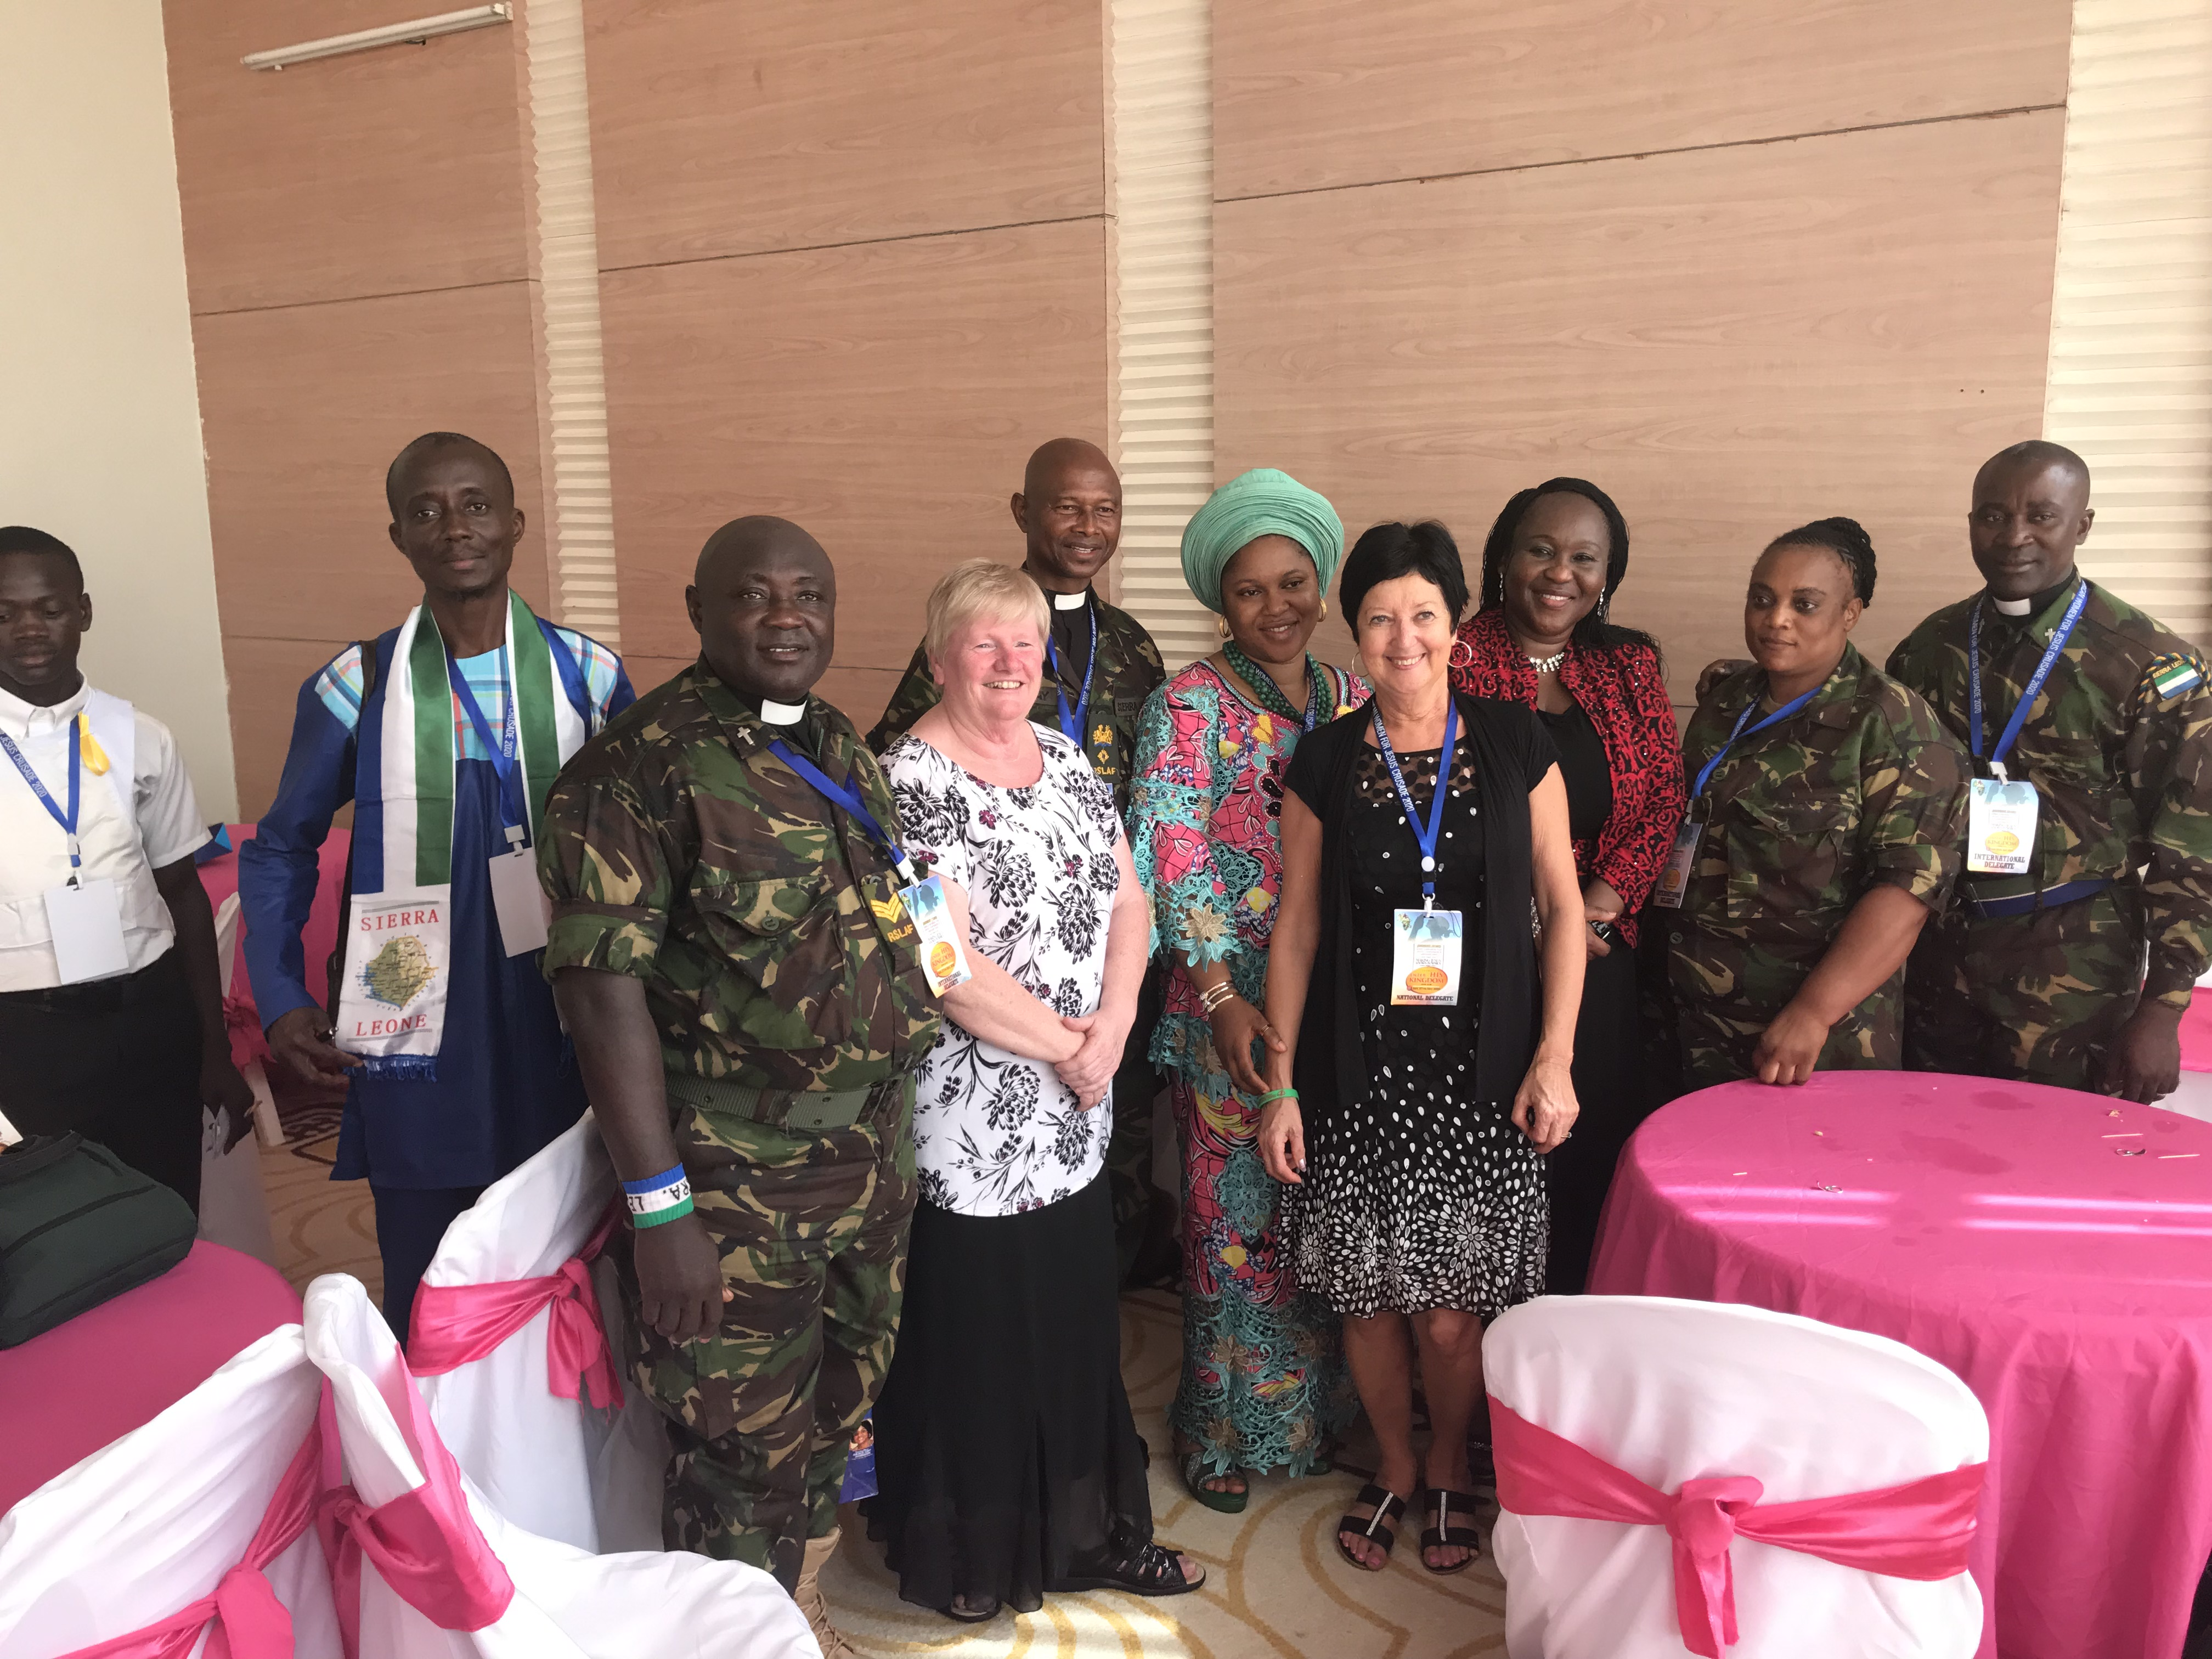 The Chaplain for the entire Military of Sierra Leone was at this conference,